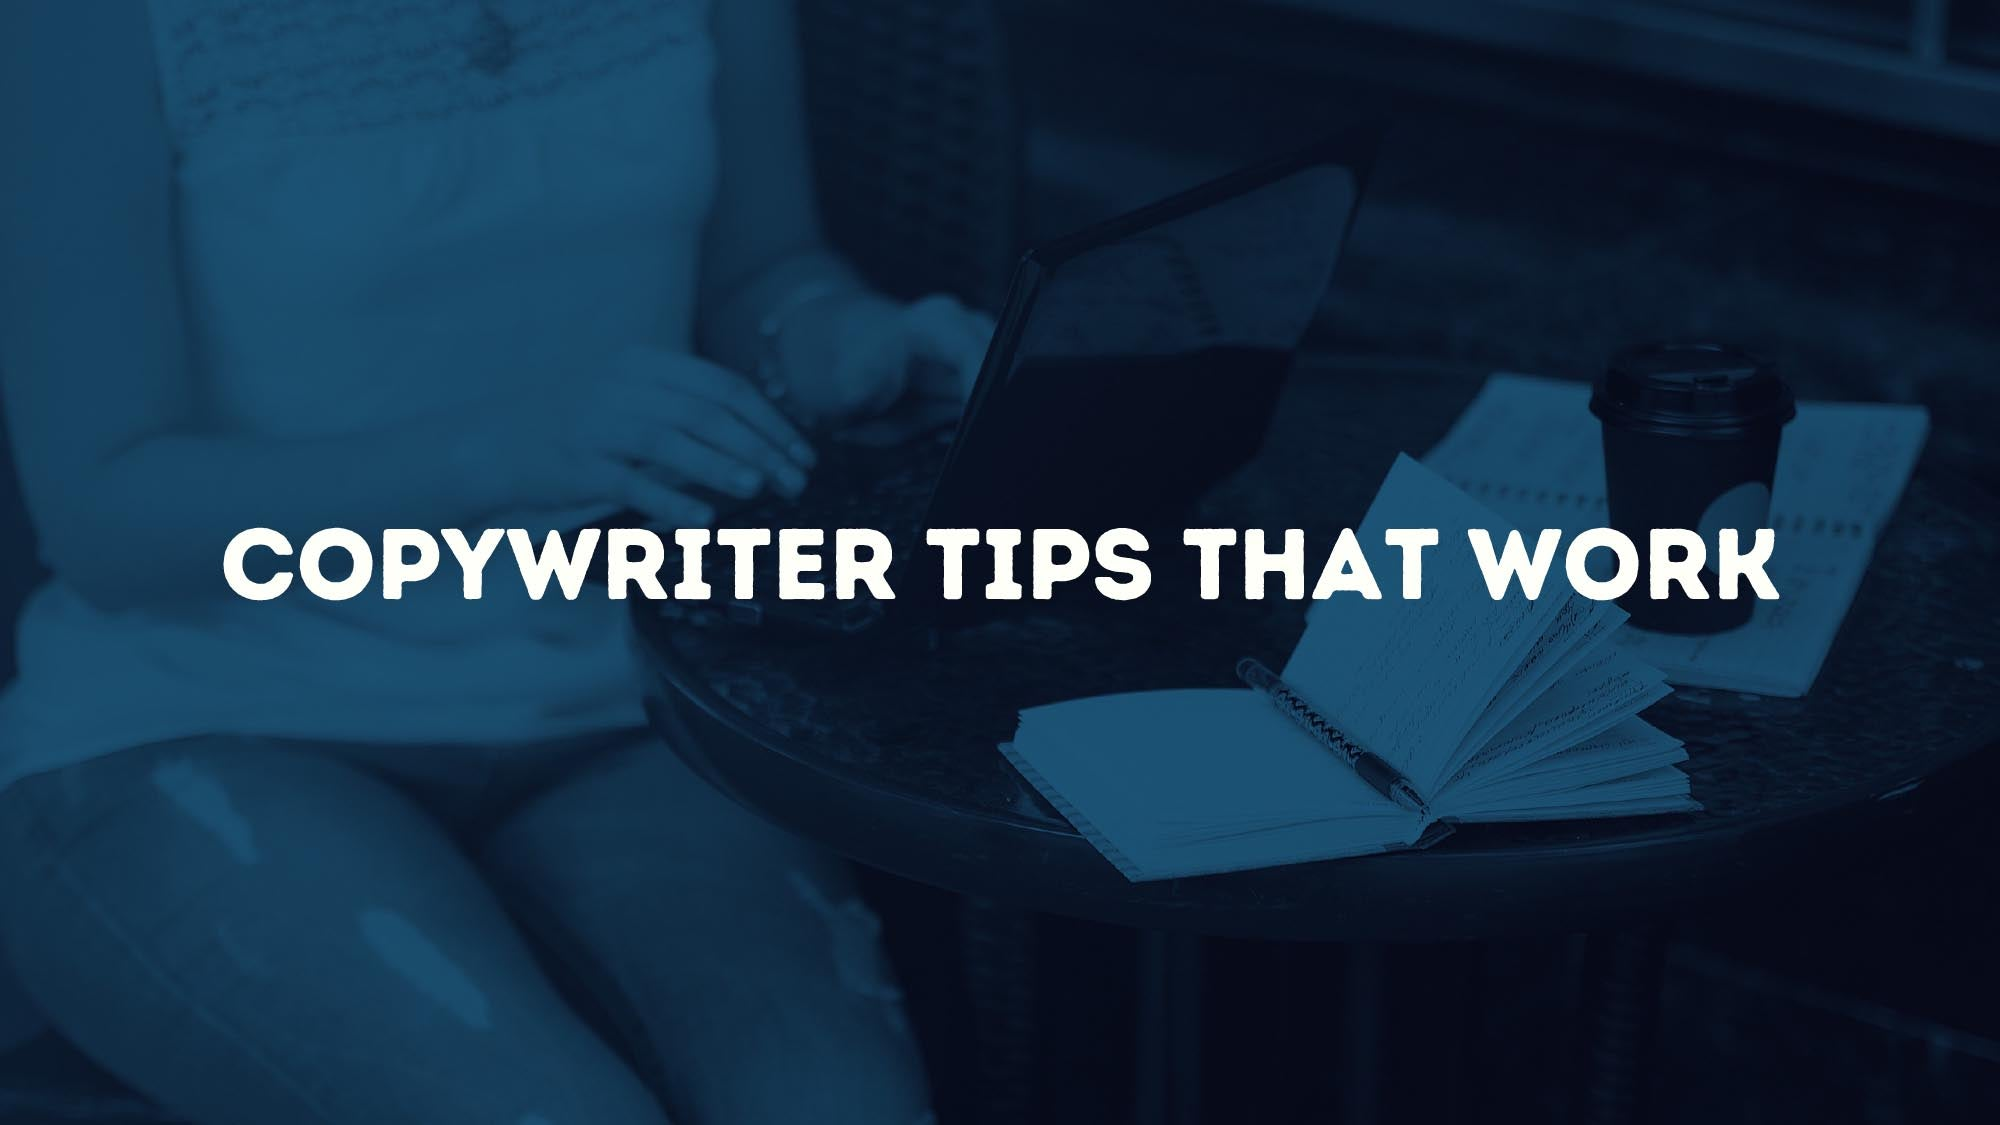 Copywriter Tips That Work - Dropship USA